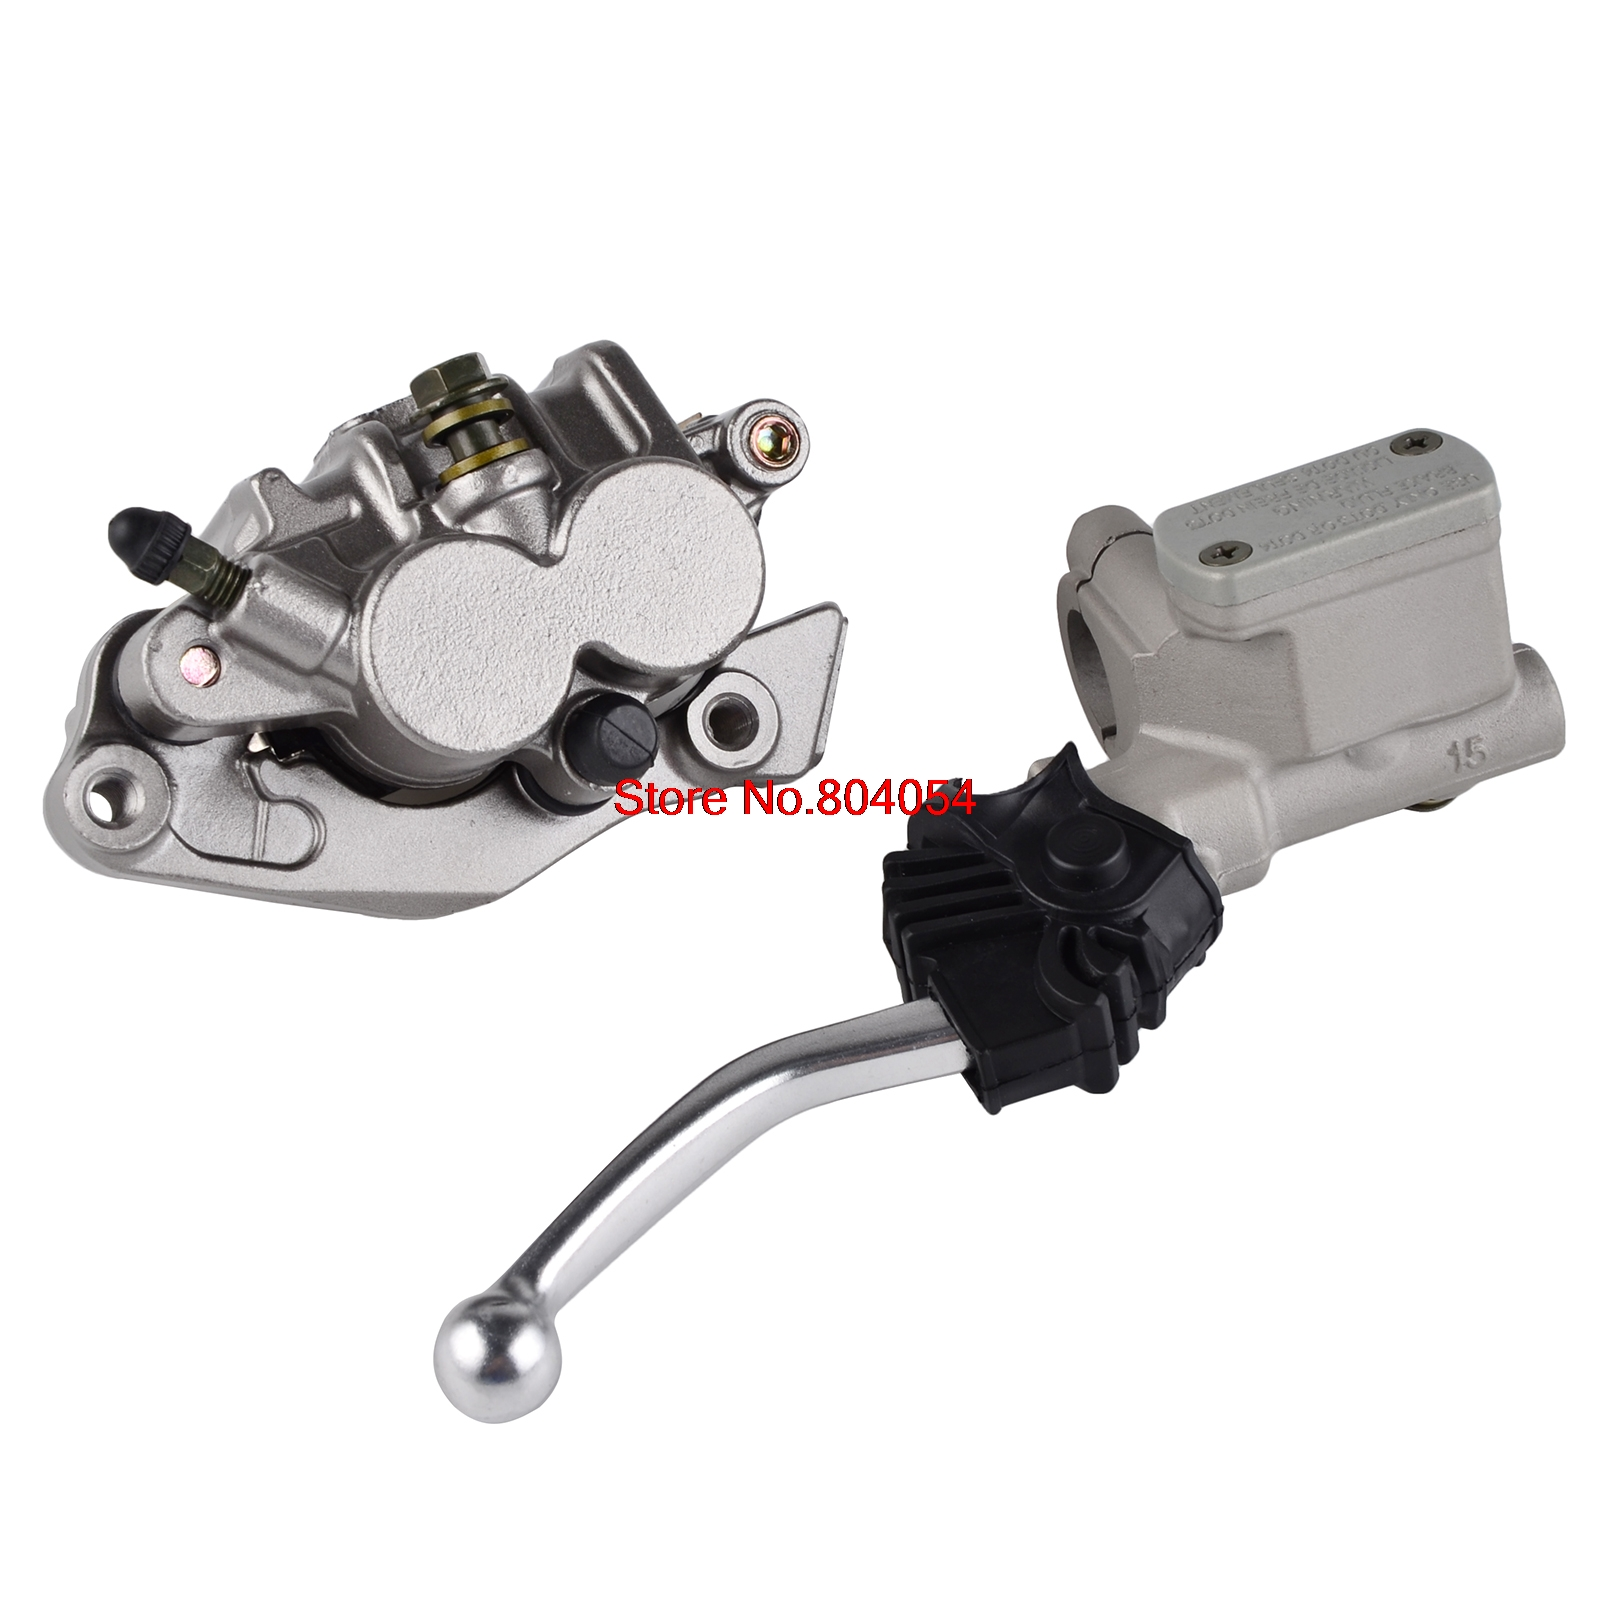 Front Master Cylinder Lever & Brake Caliper Pads For Honda CR125R CR250R CRF150F CRF230F CRF250R CRF250X CRF450R CRF450X cnc offroad mx clutch brake levers for honda cr125r 04 07 cr250r crf250r 04 06 crf450r 04 06 crf250x 04 16 crf450x 05 16